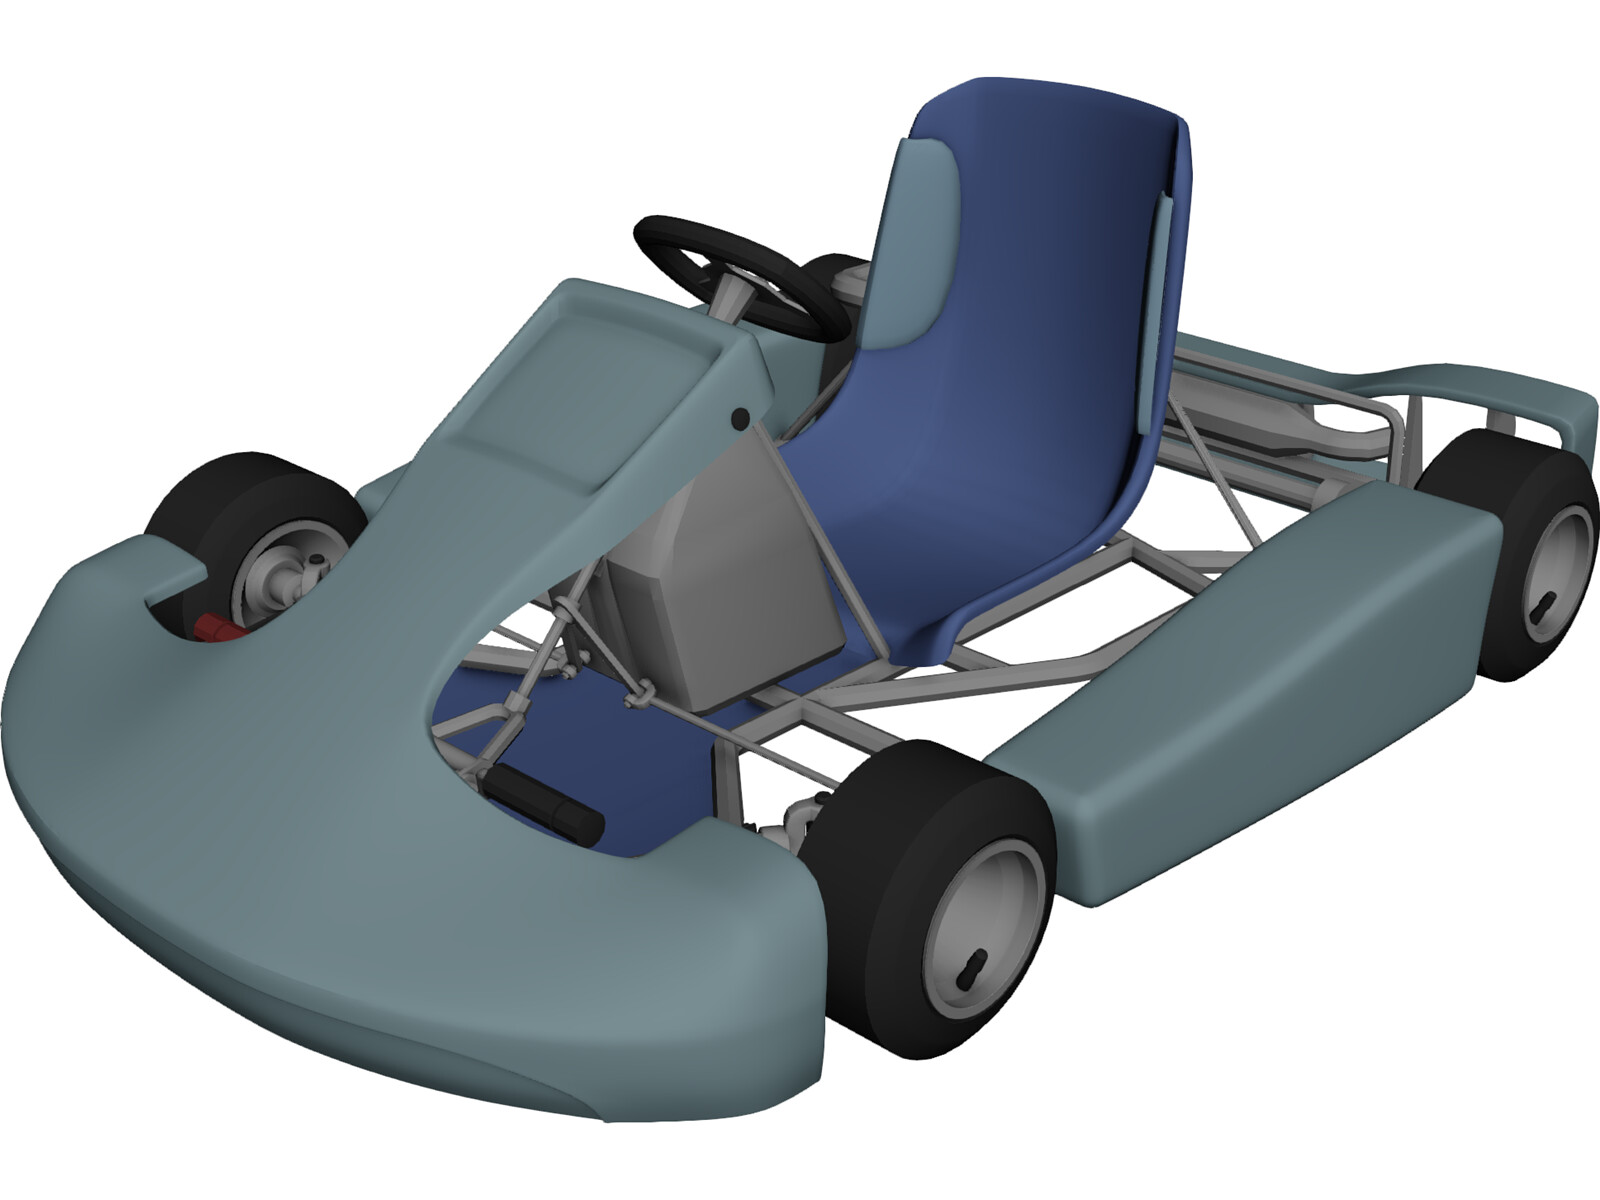 3d kart Kart 3D Model   3D CAD Browser 3d kart